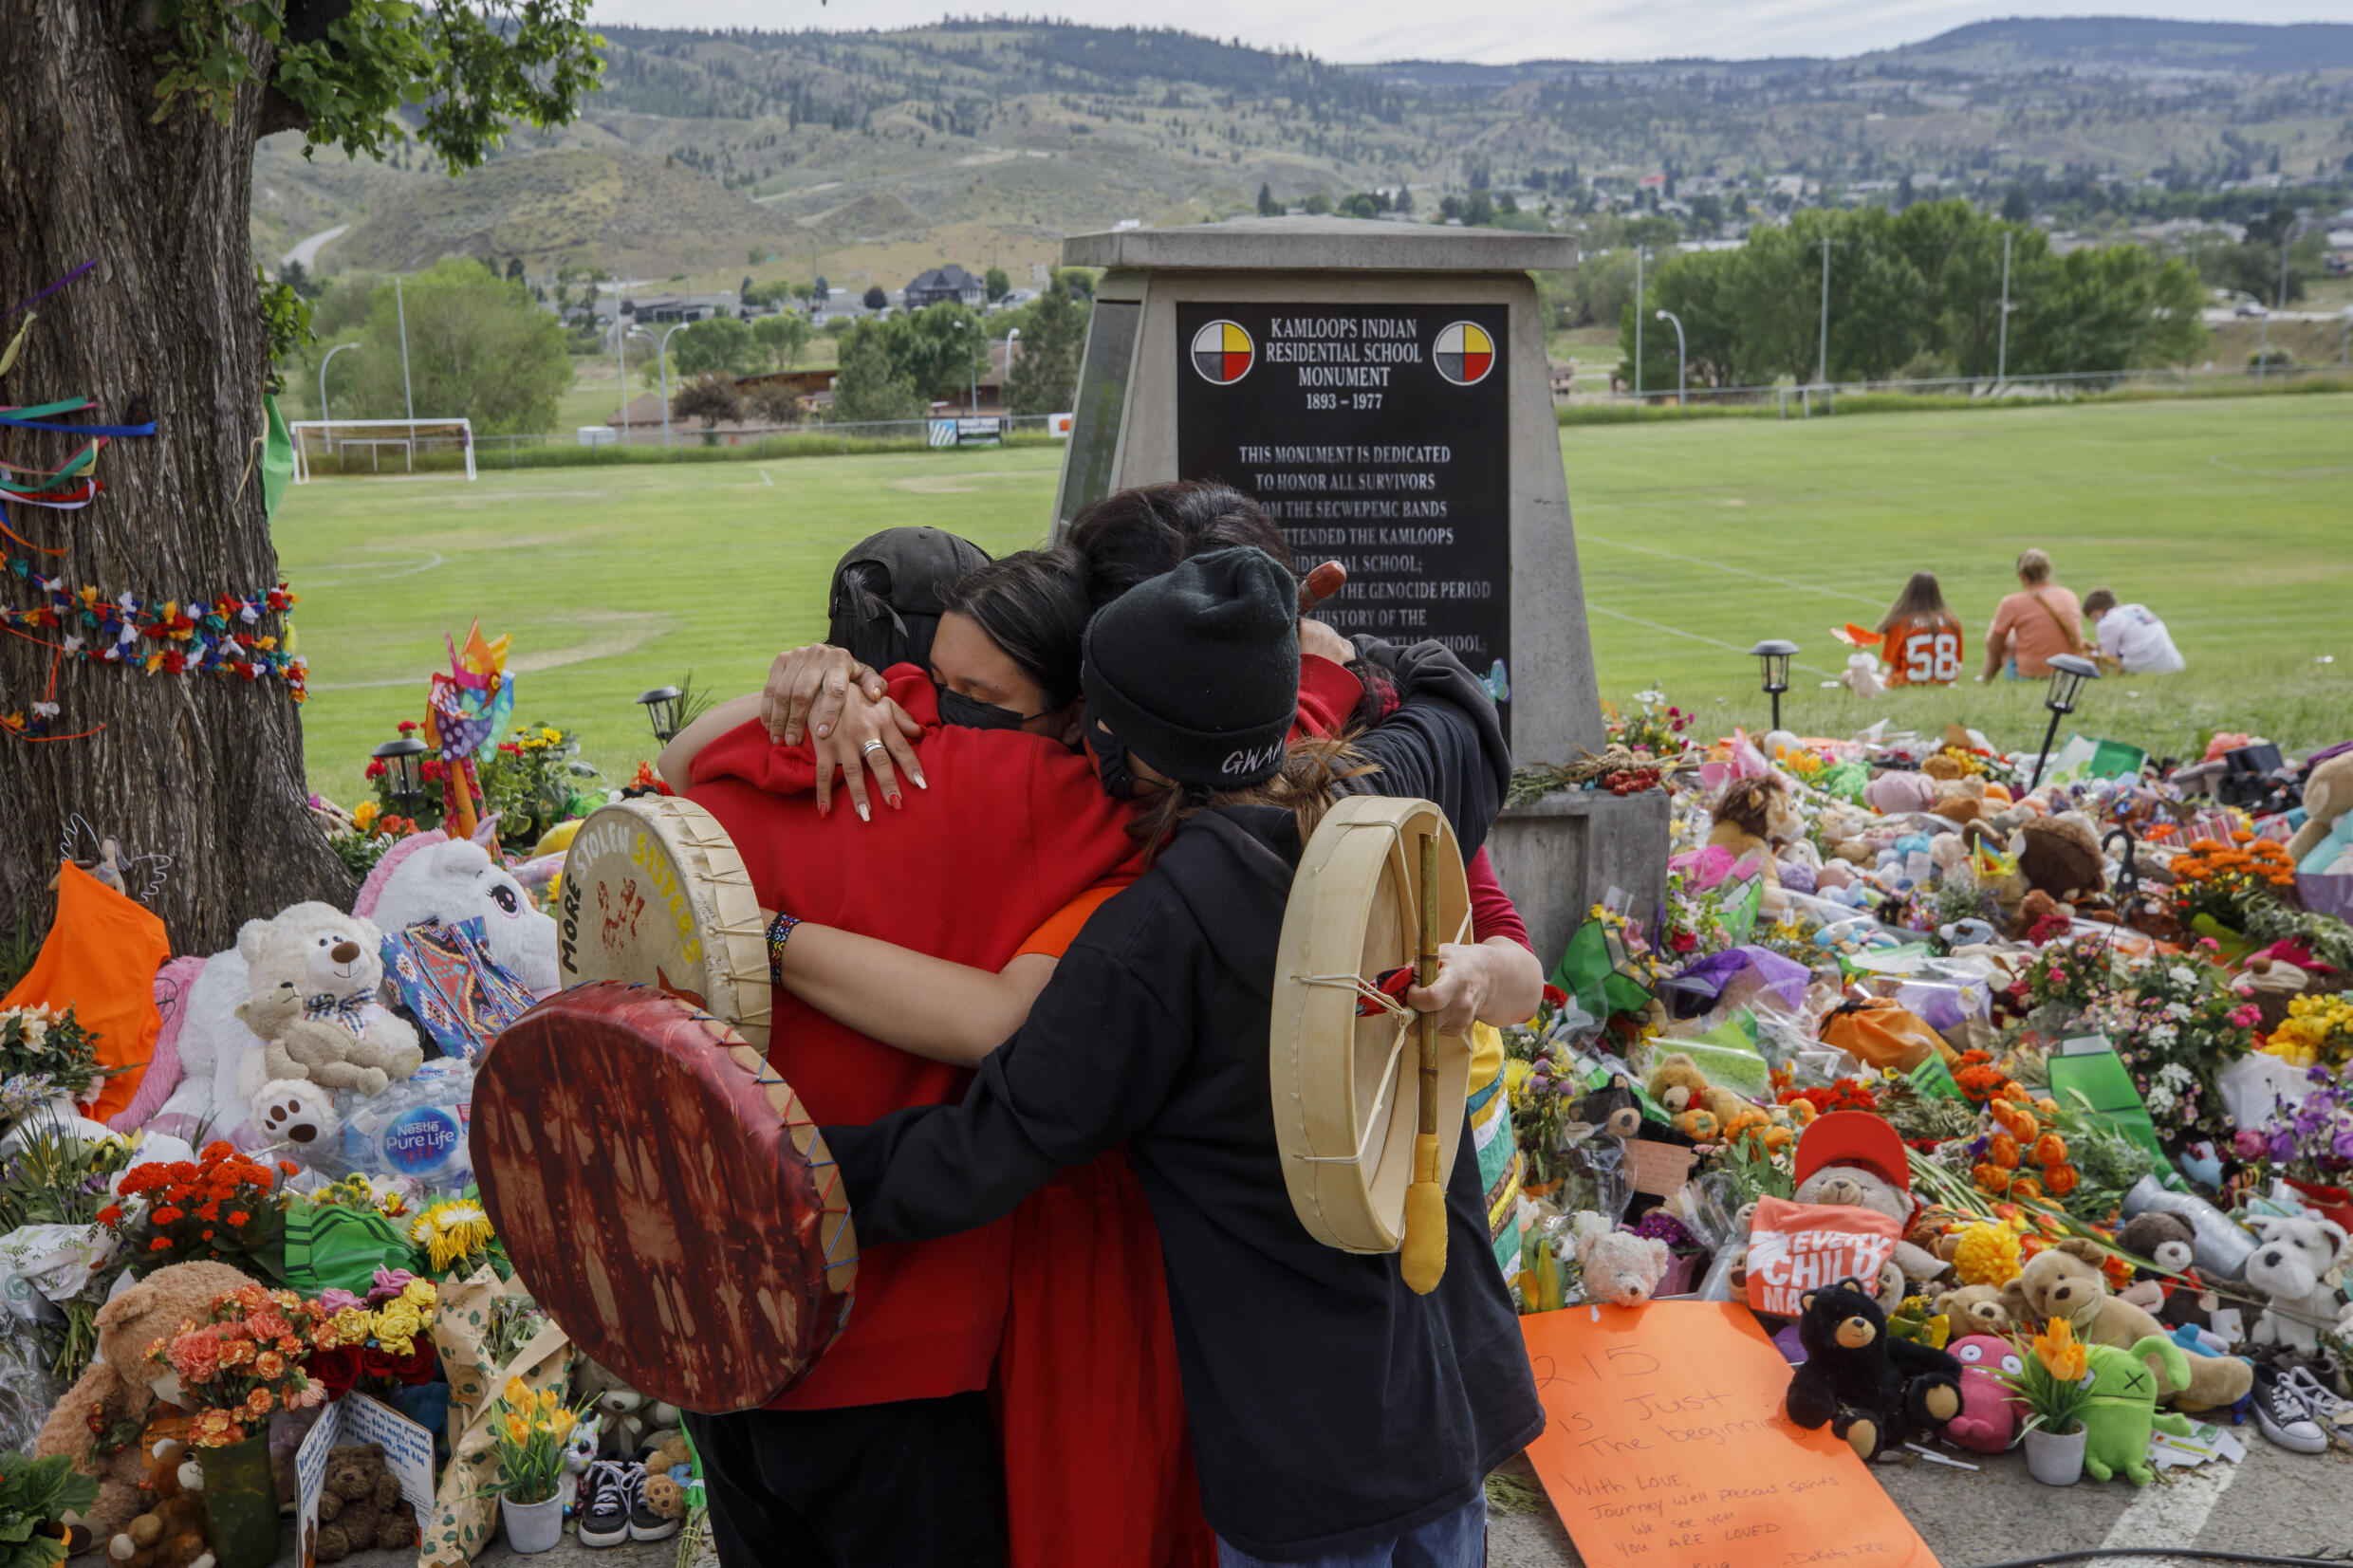 A new discovery of hundreds of unmarked graves near a former school for indigenous in western Canada follows the earlier unearthing of children's remains at another school in Kamloops, British Columbia